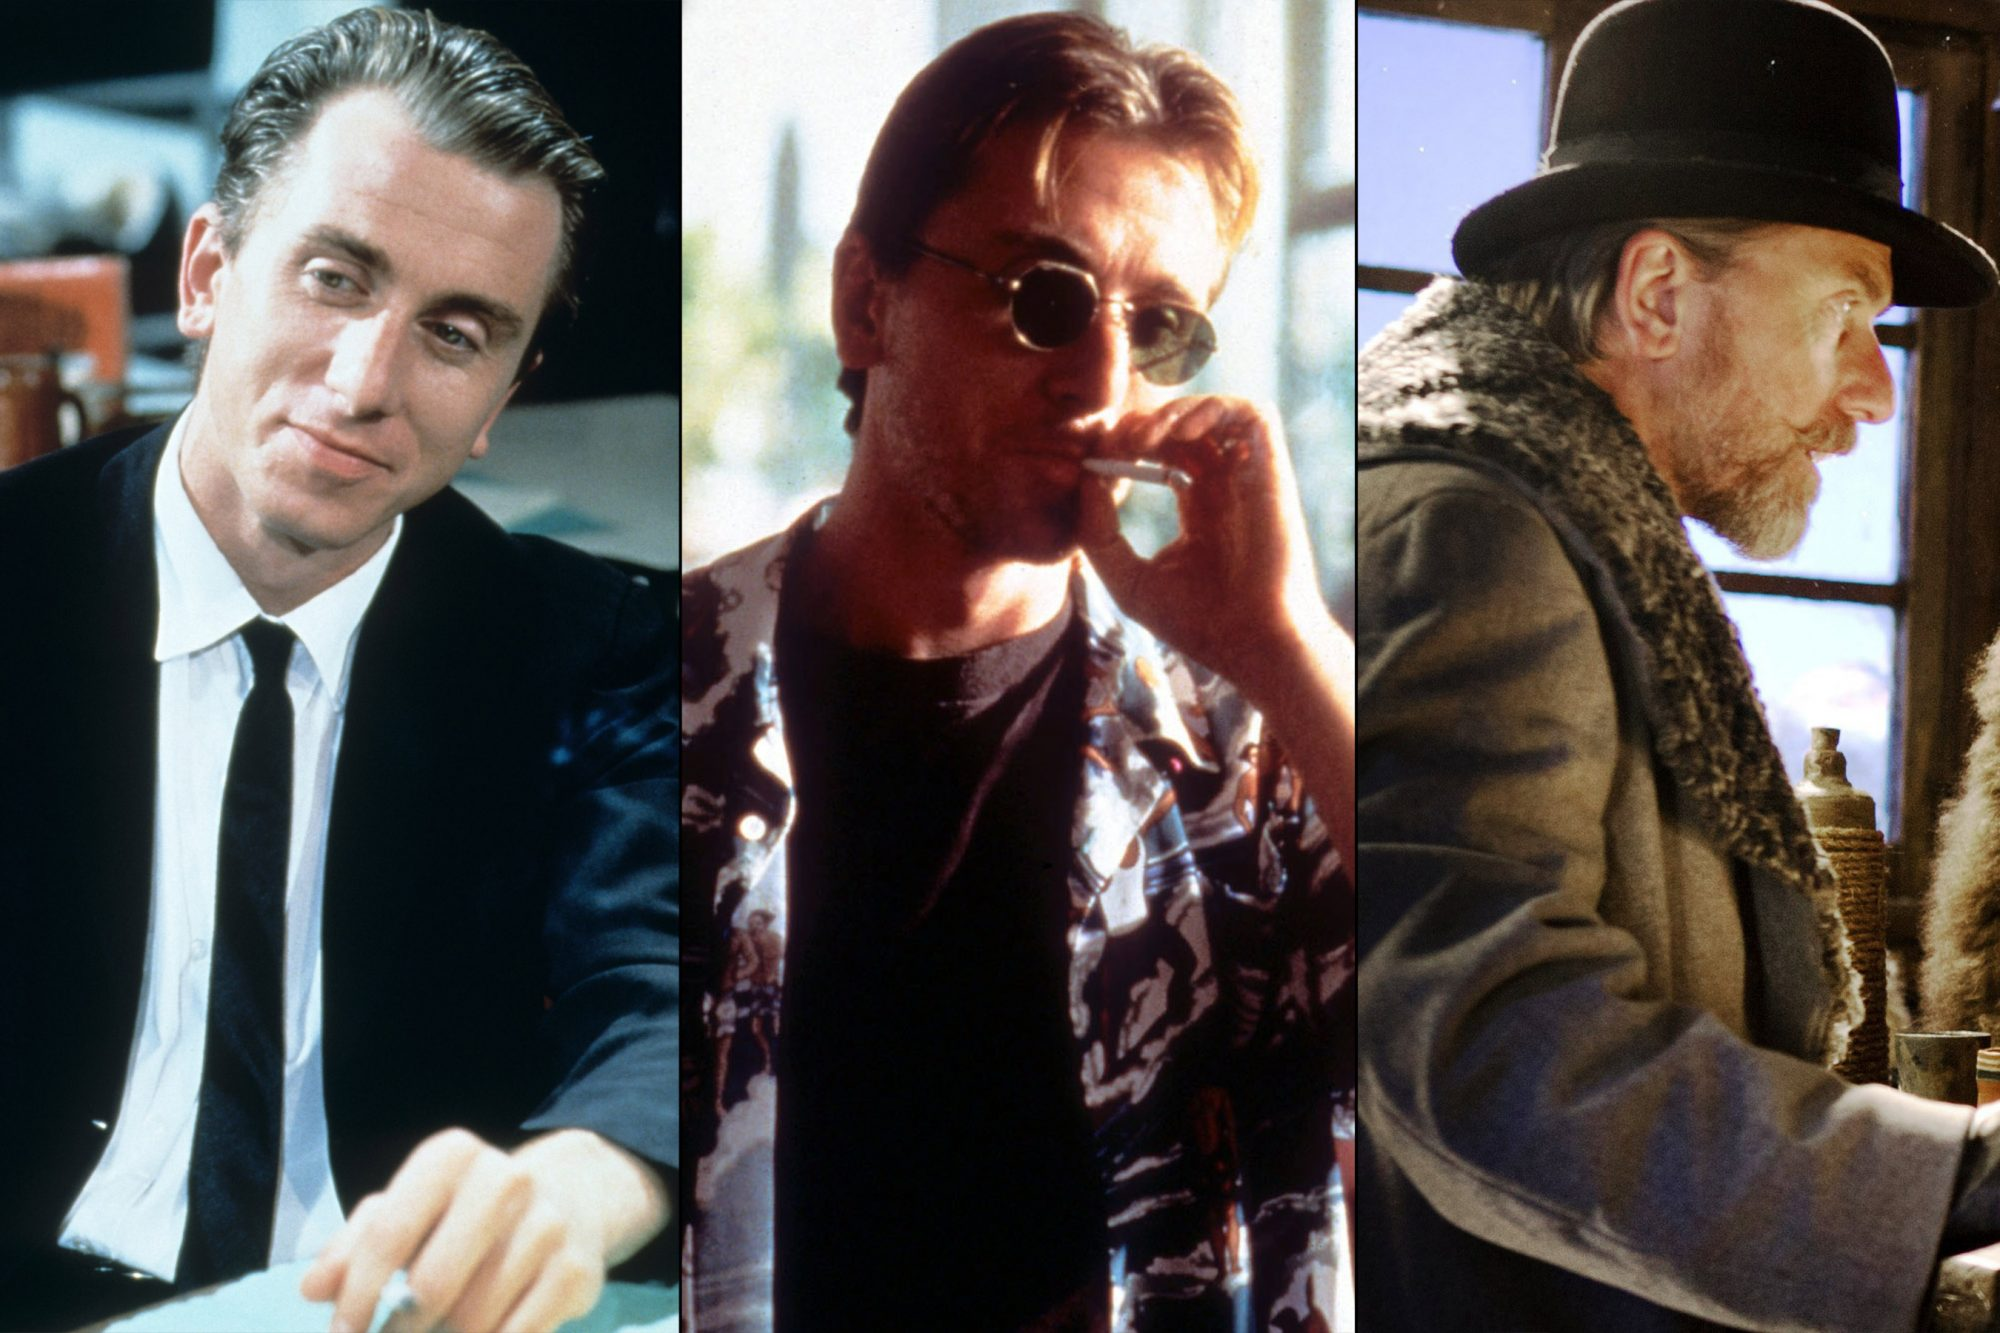 6. Tim Roth (Reservoir Dogs, Pulp Fiction, Four Rooms, The Hateful Eight)